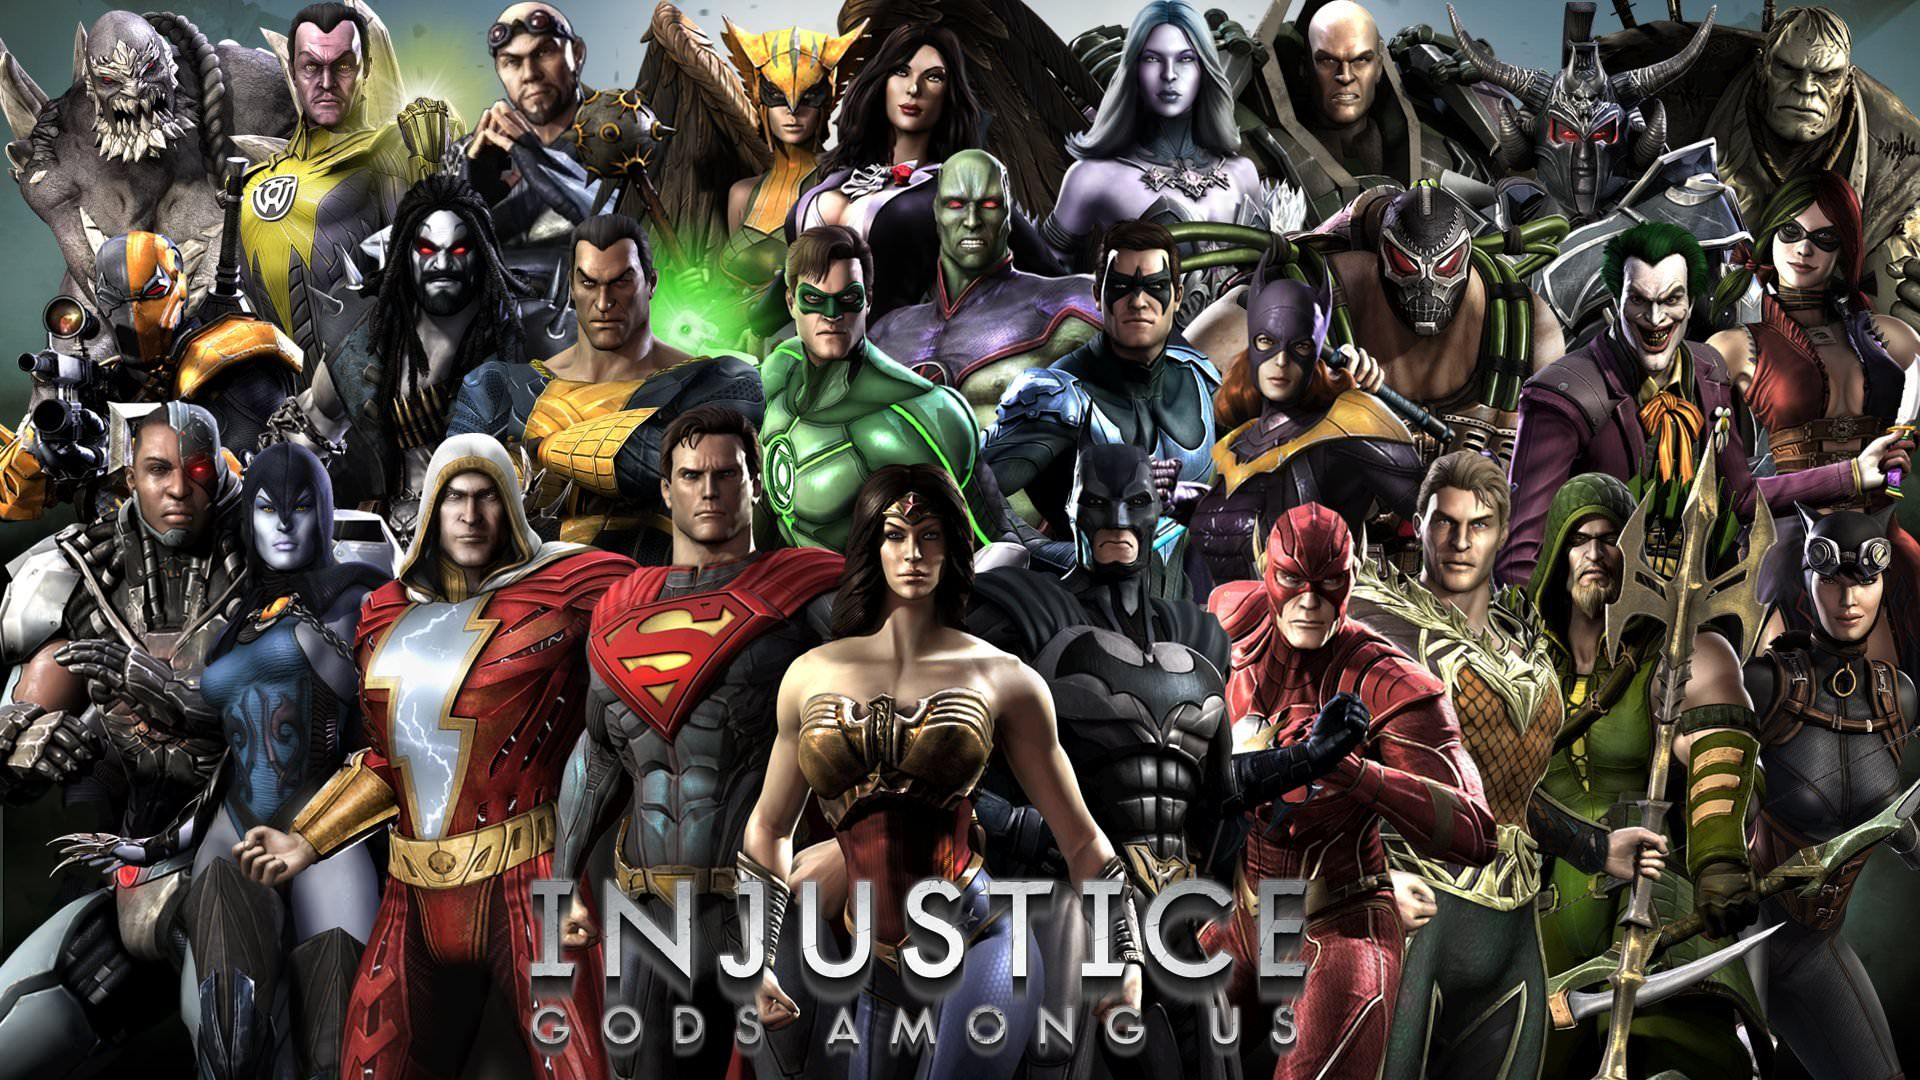 Pin by Randomtv on Dc in 2020 Injustice, Injustice game